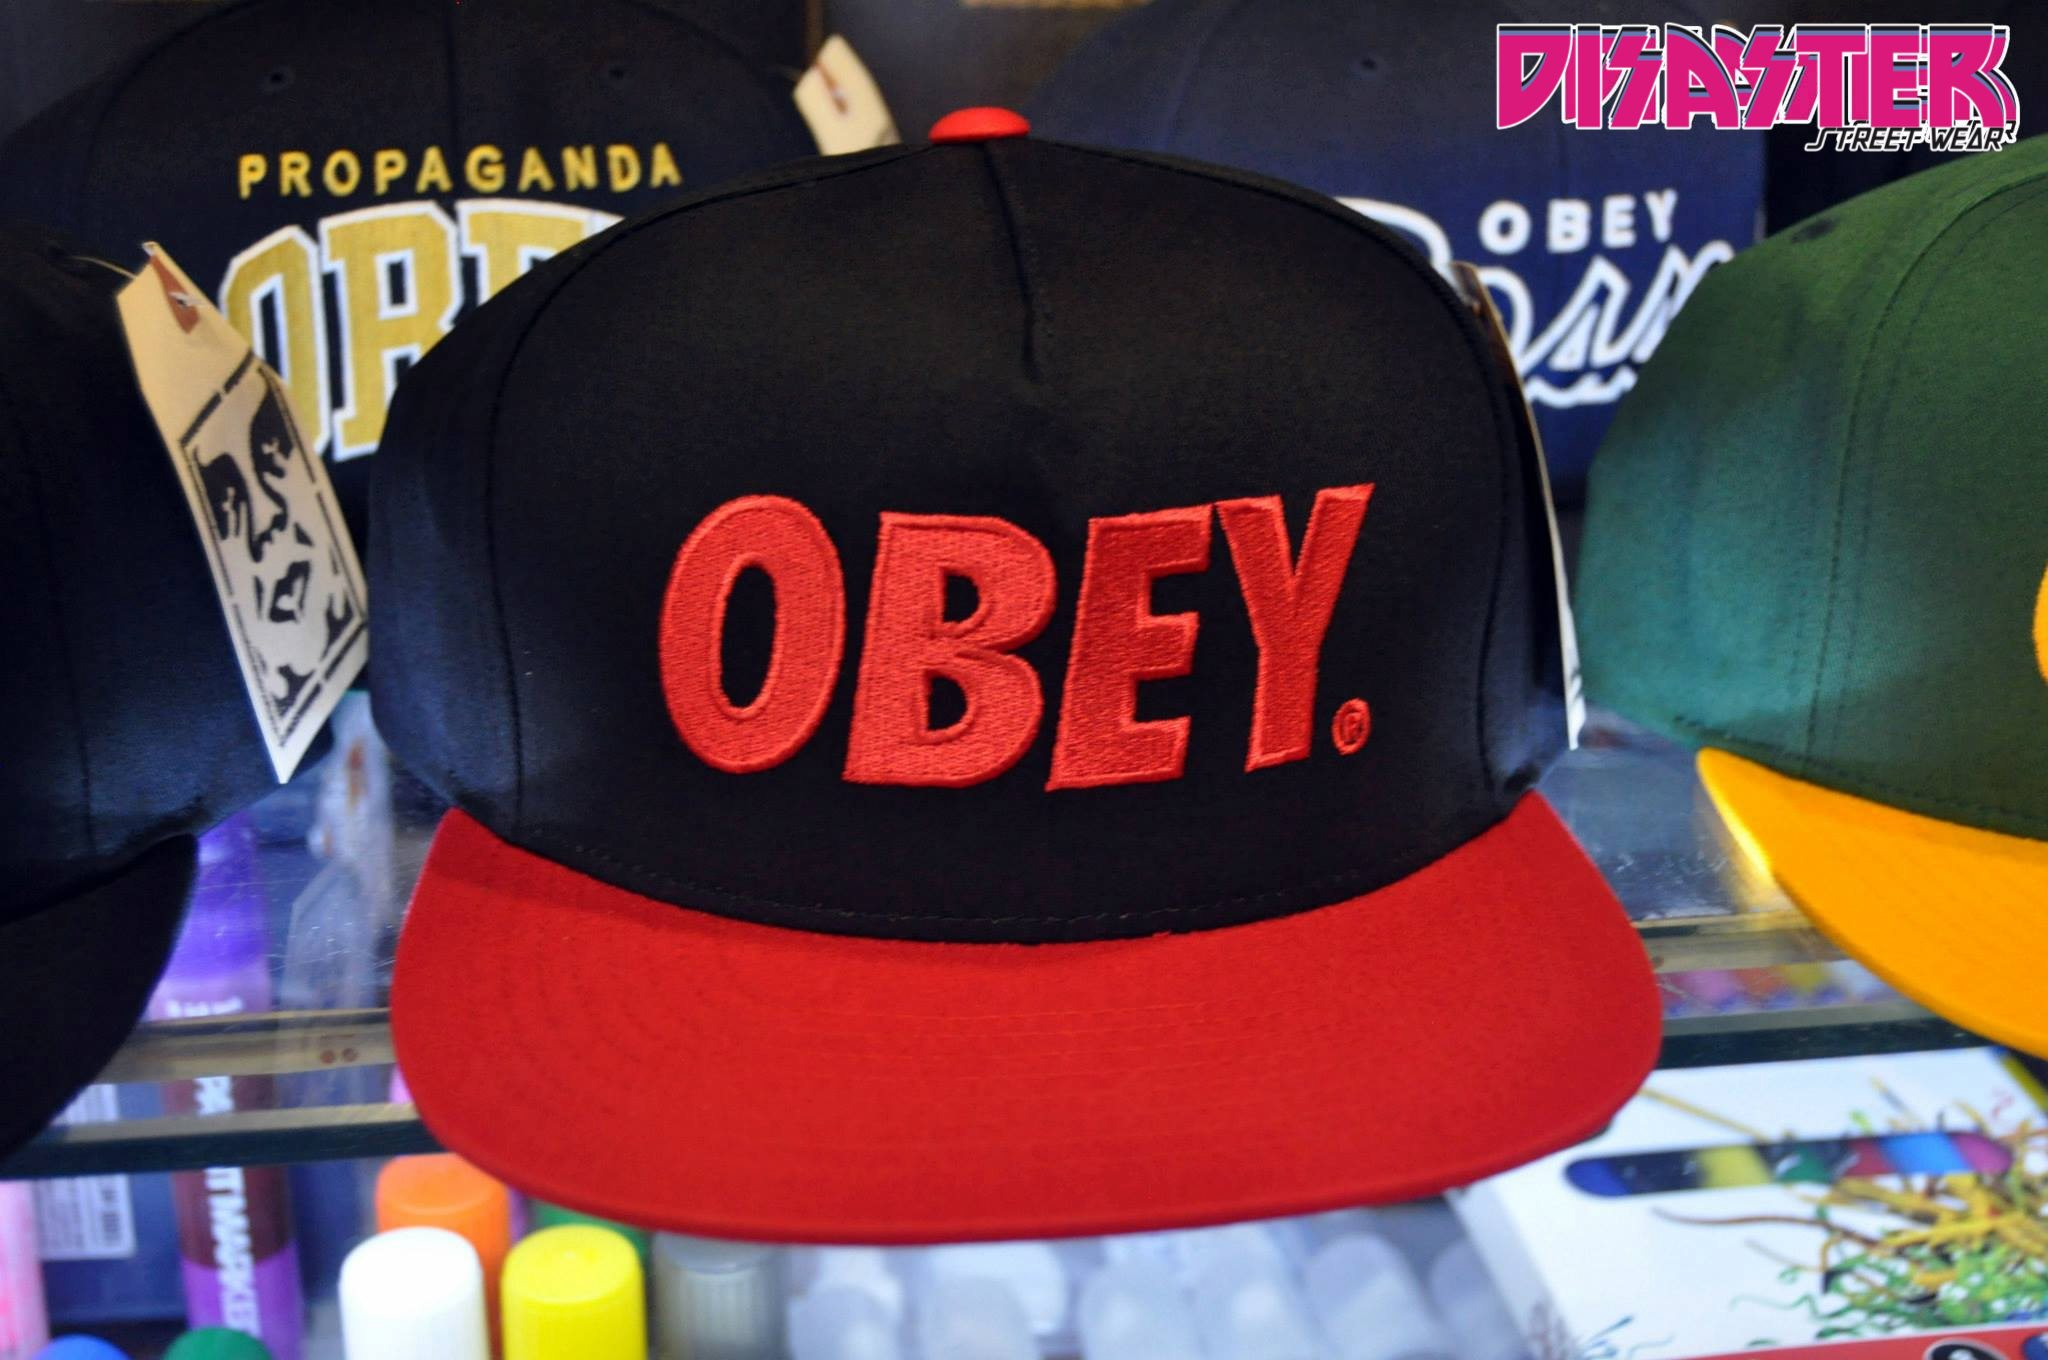 Obey-Gorra -Cap-Snapback-Disaster-Street-Wear-Obey-The-City-www.disasterstreetwear.com-1conlogo 0d48c063ad8